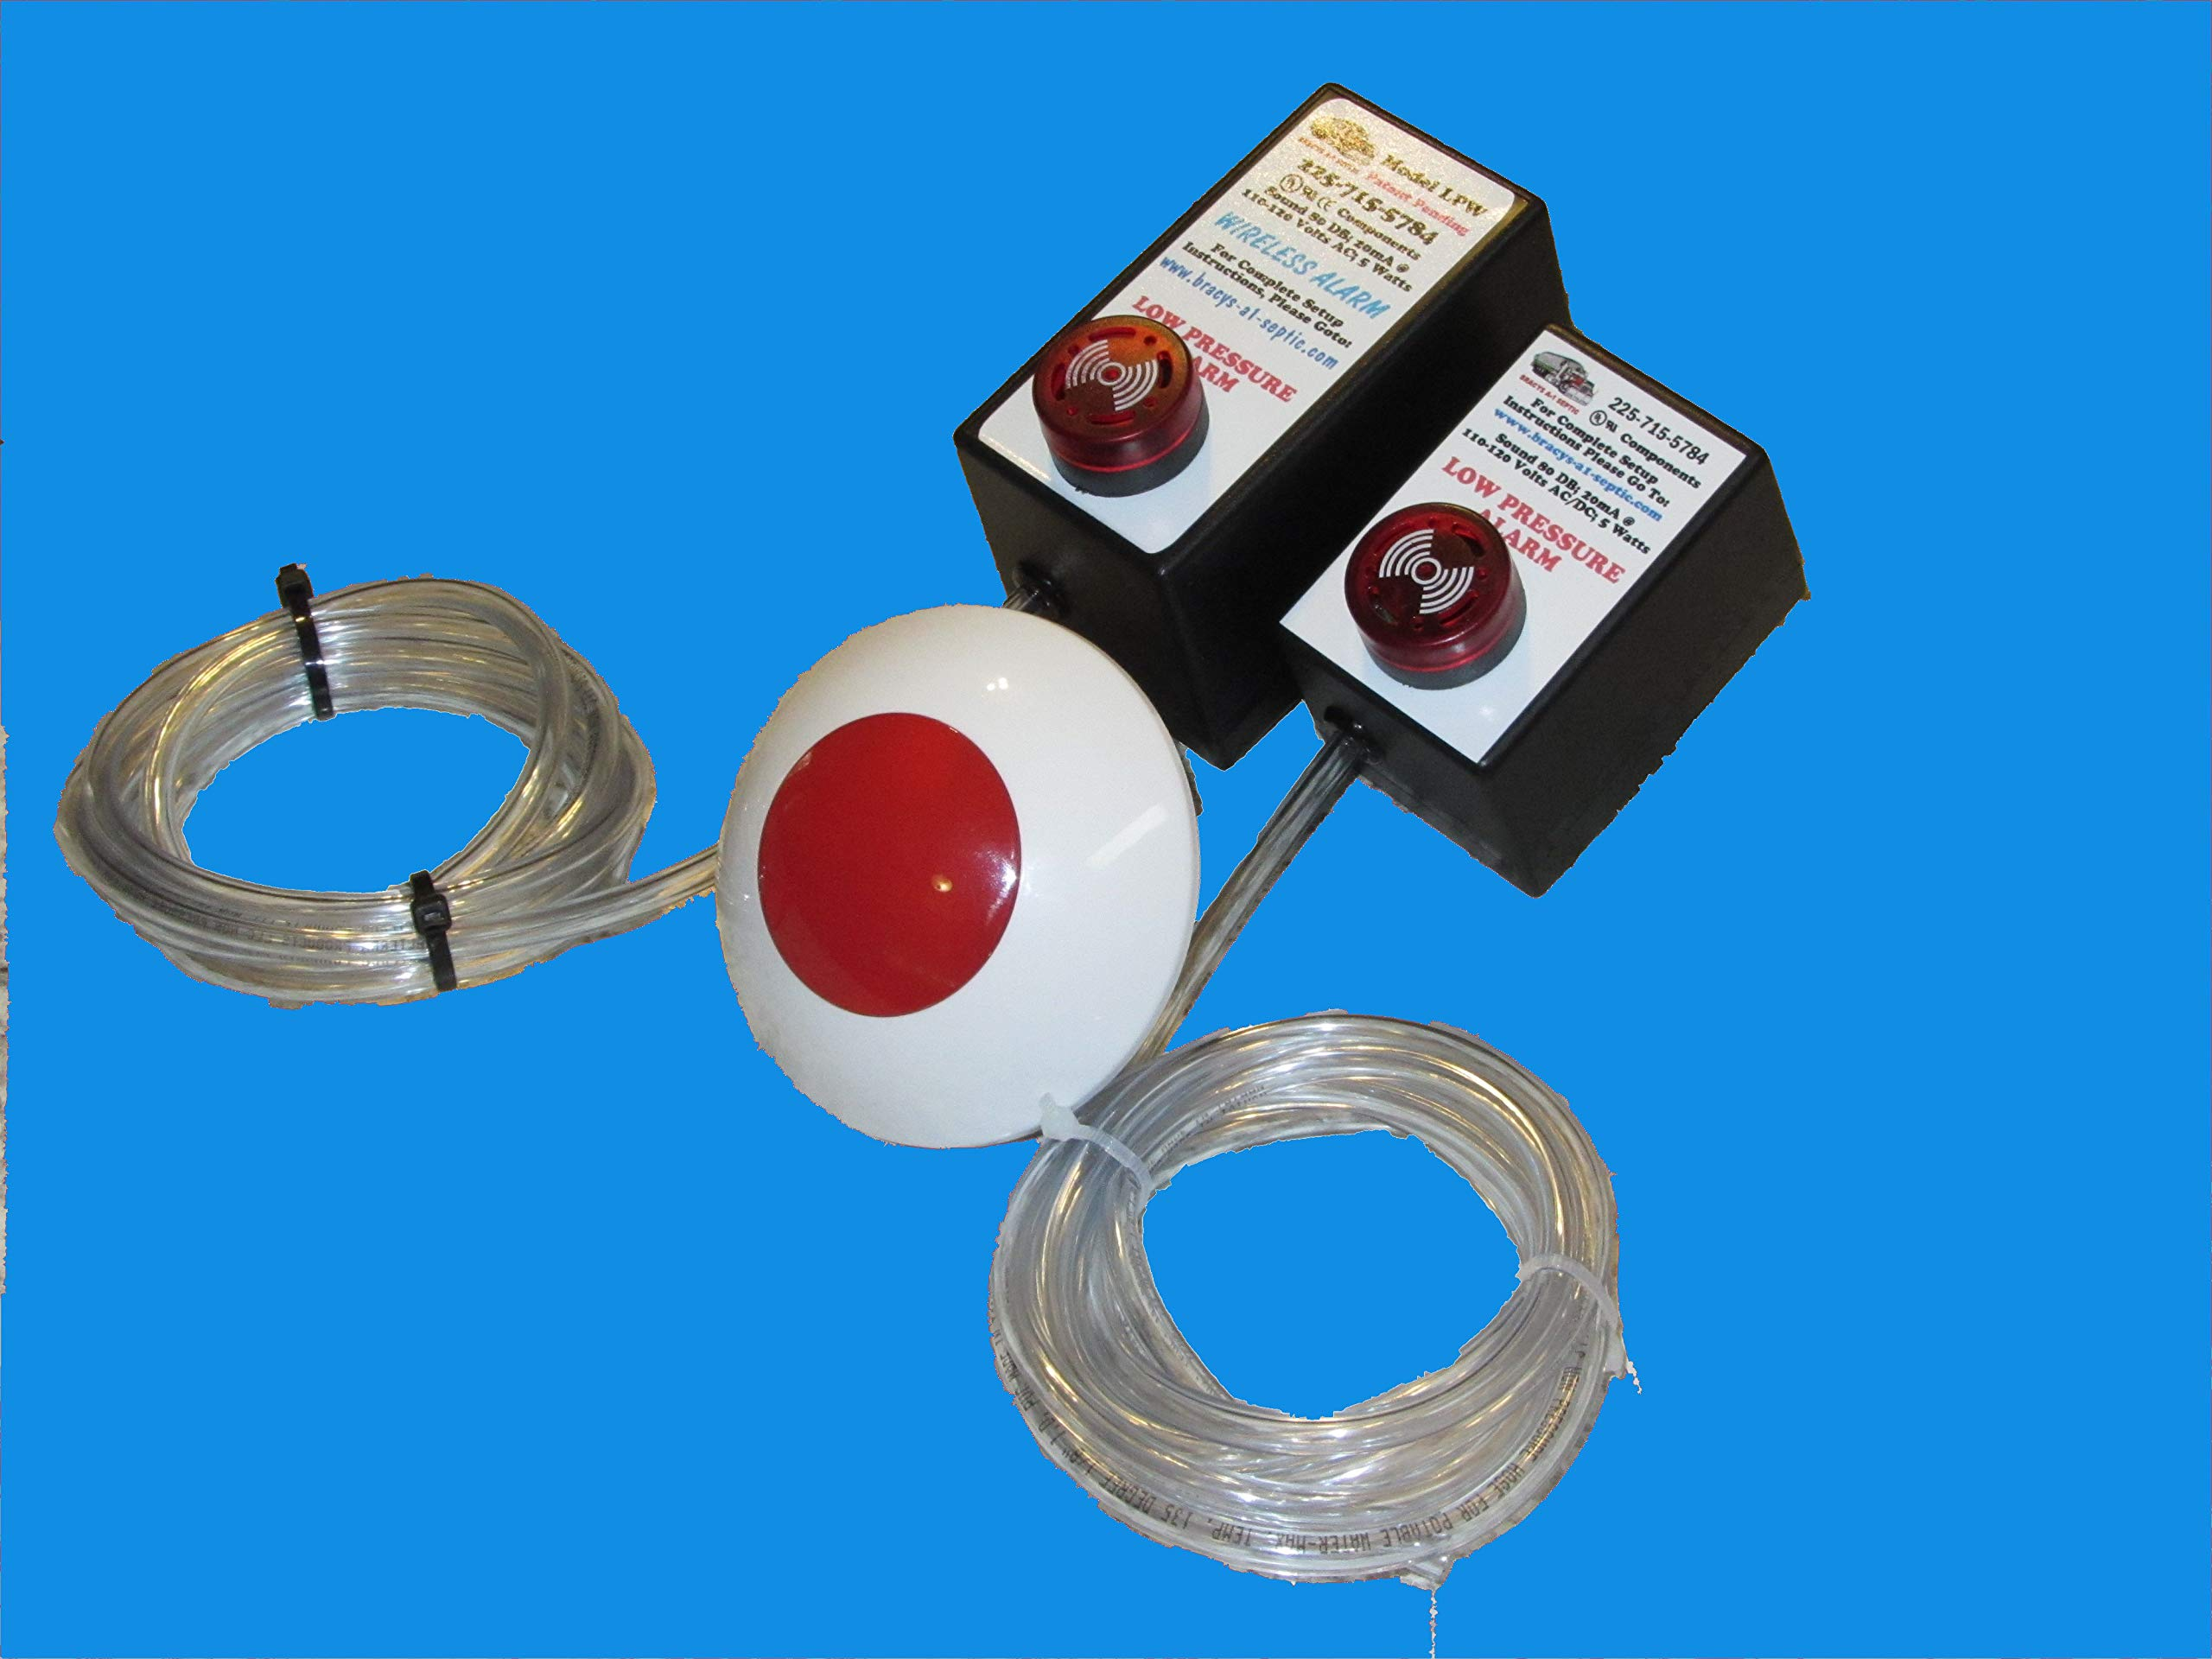 Low Air Pressure Plugin Alarm for Septic Linear Diaphragm Air Pumps (Wireless) by Bracys A-1 Septic (Image #1)